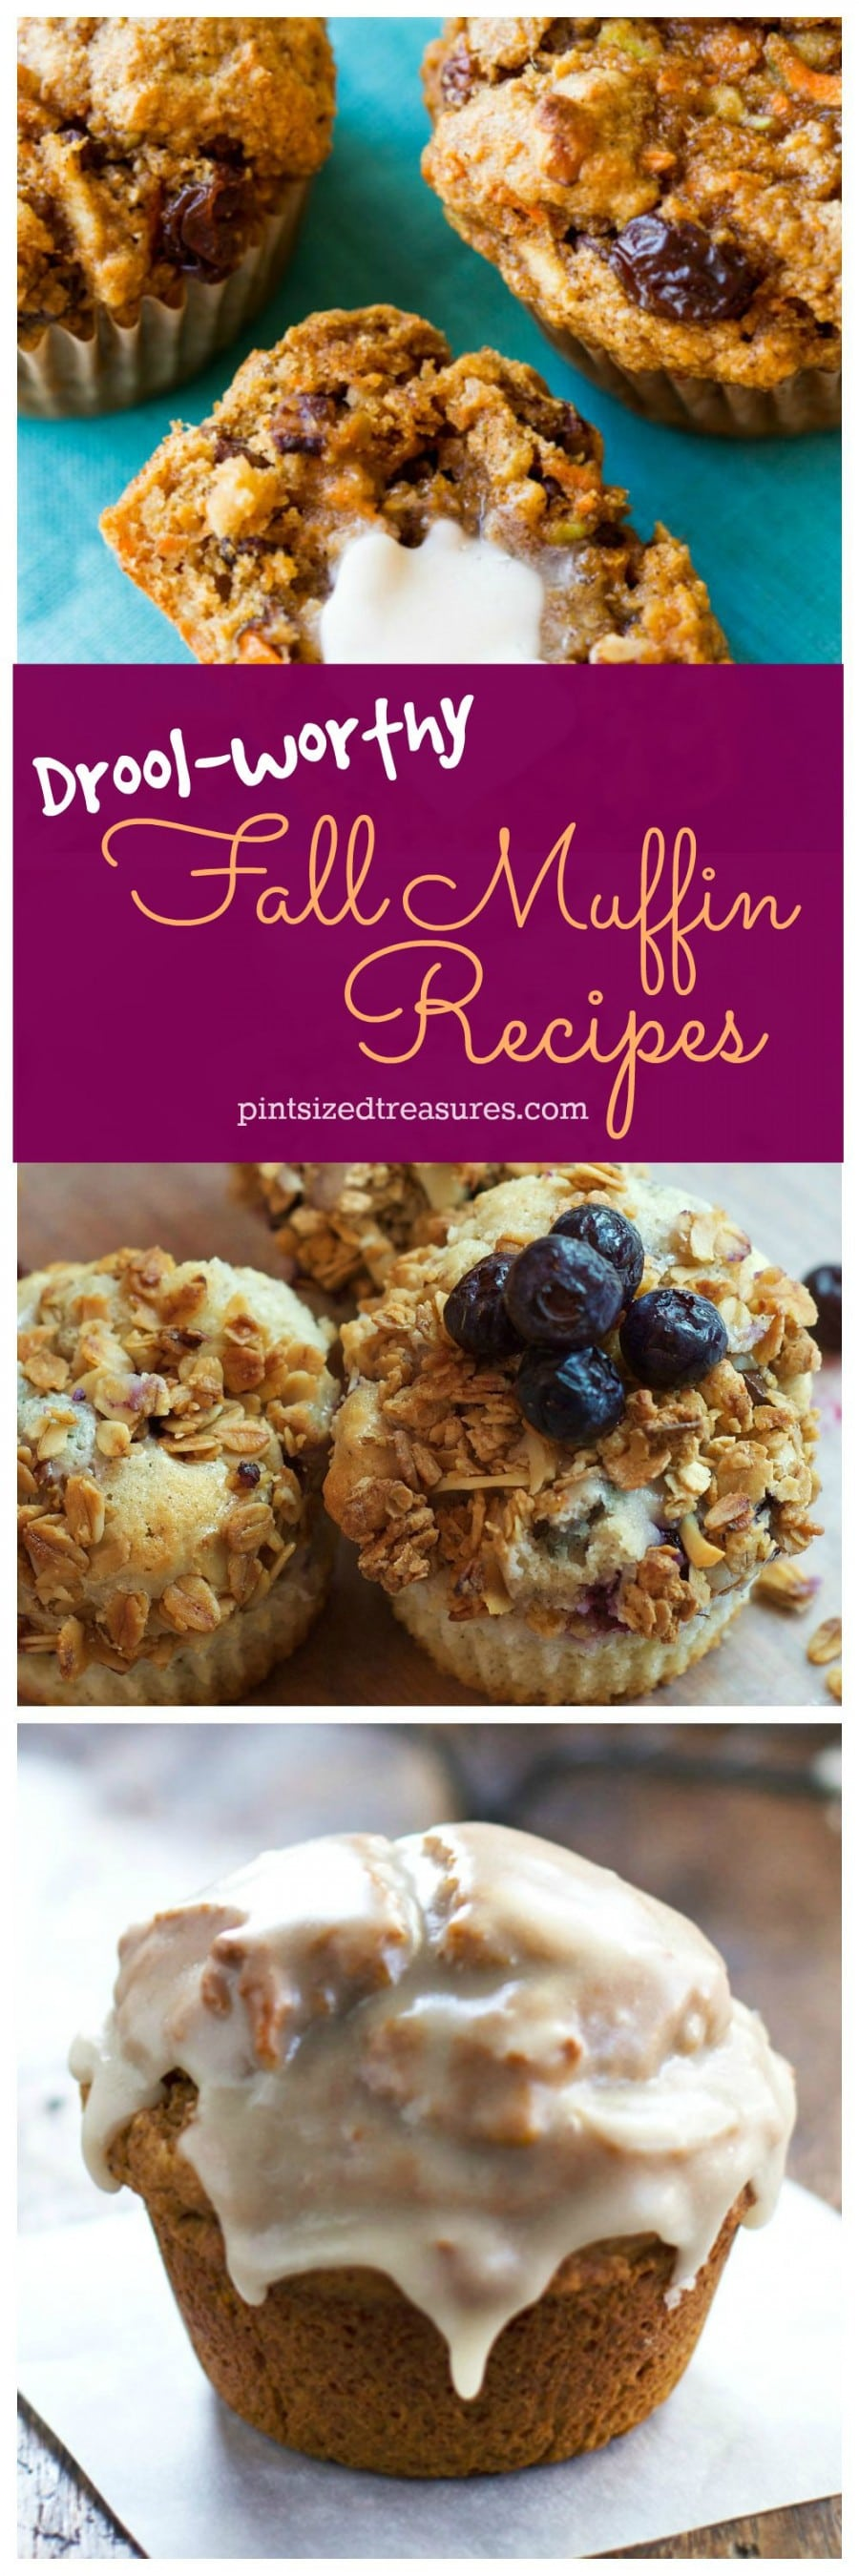 fall muffin collage preview-1